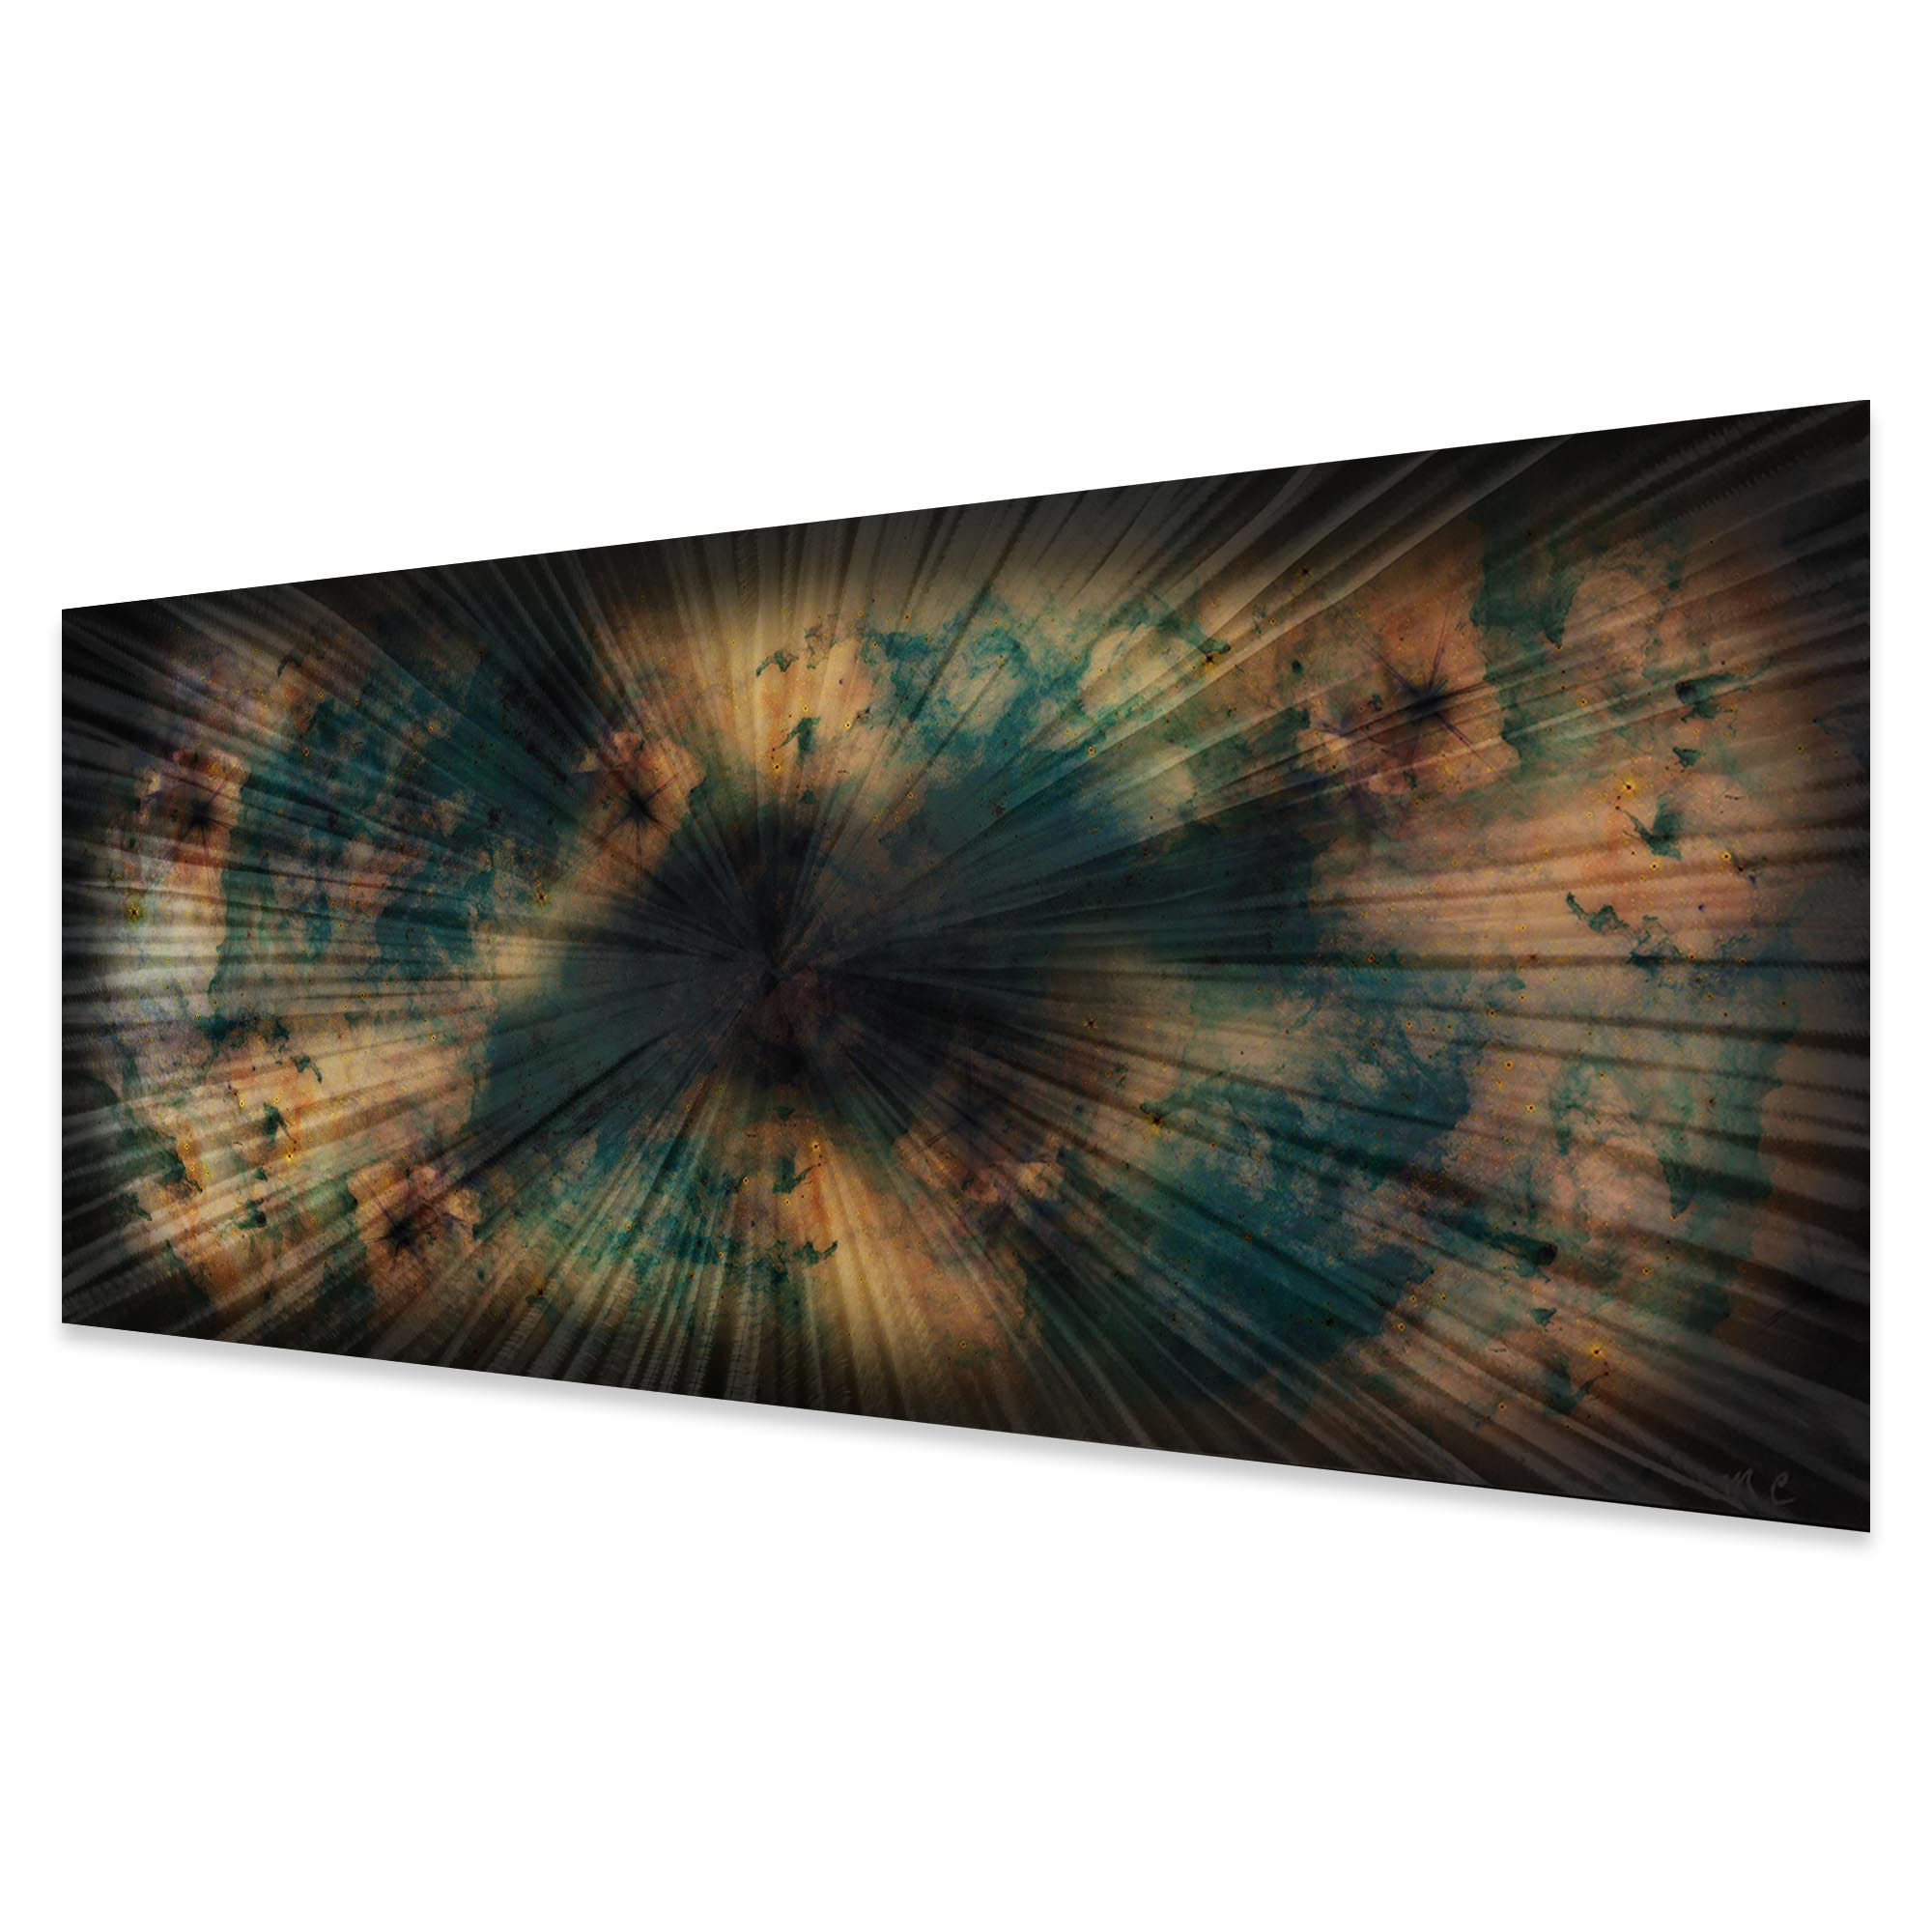 Organic Nebula by Helena Martin - Original Abstract Art on Ground and Colored Metal - Image 2